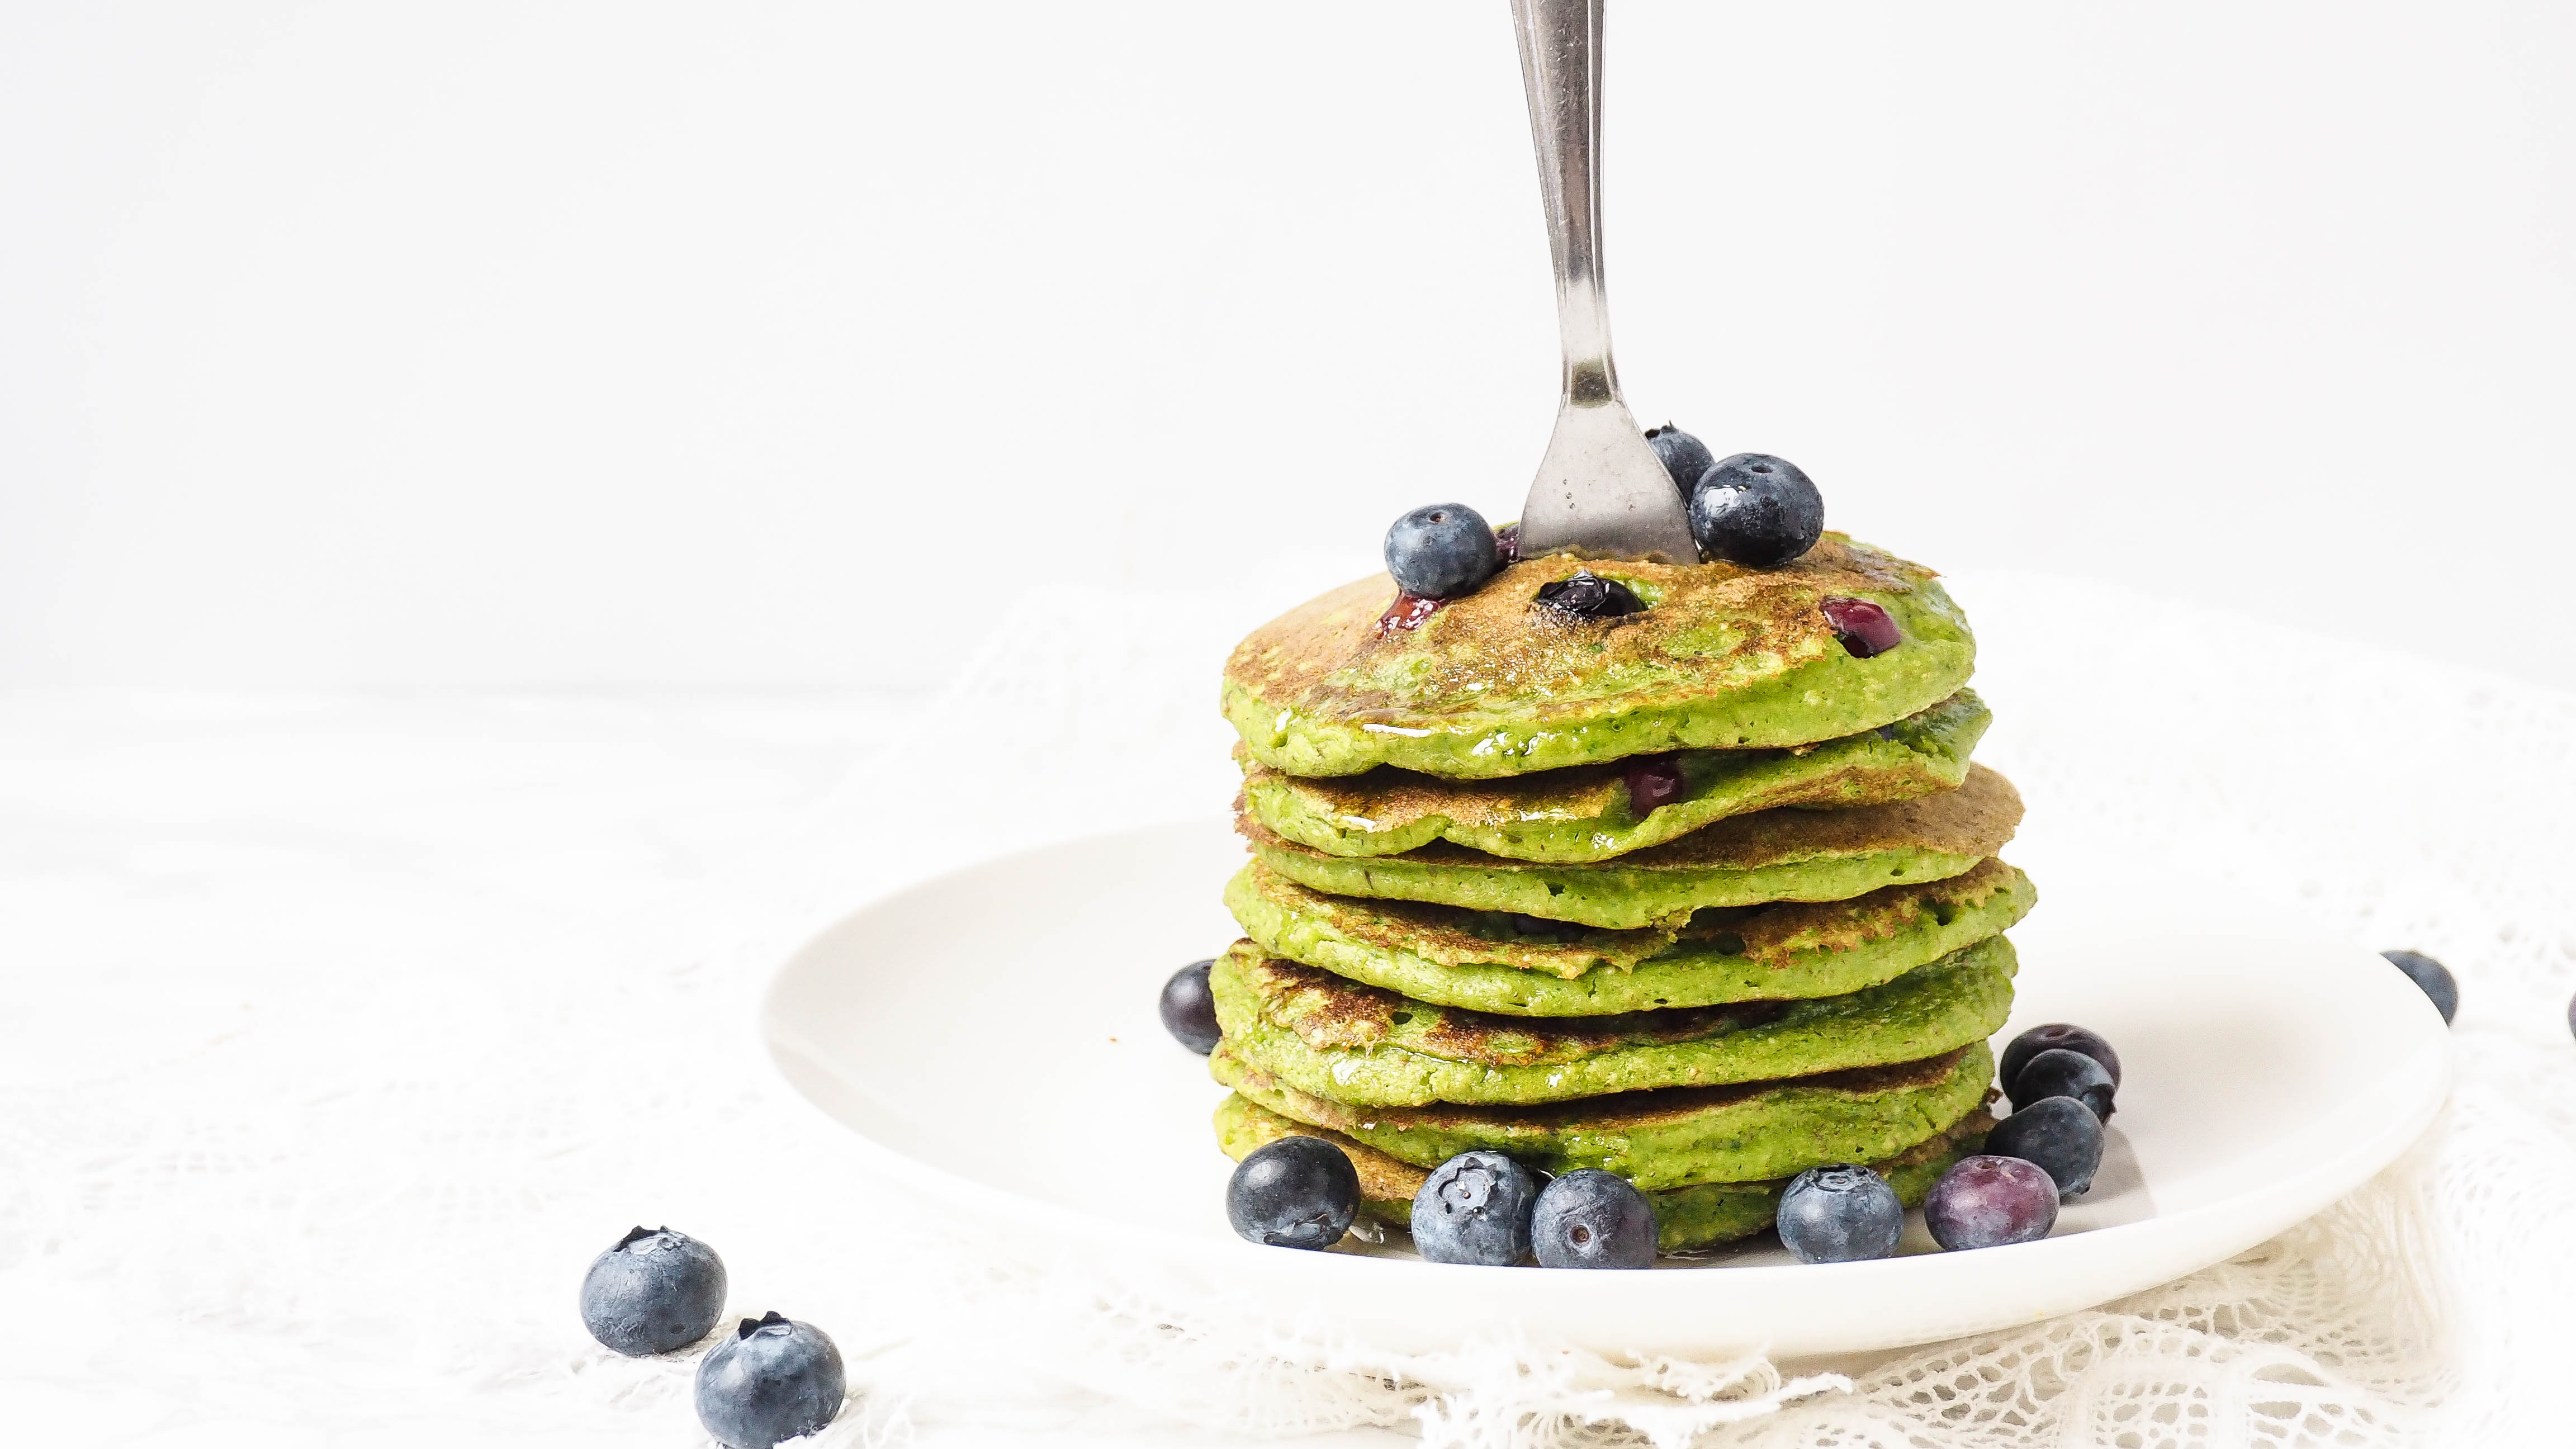 Foodwaste battle: Avocado pancakes